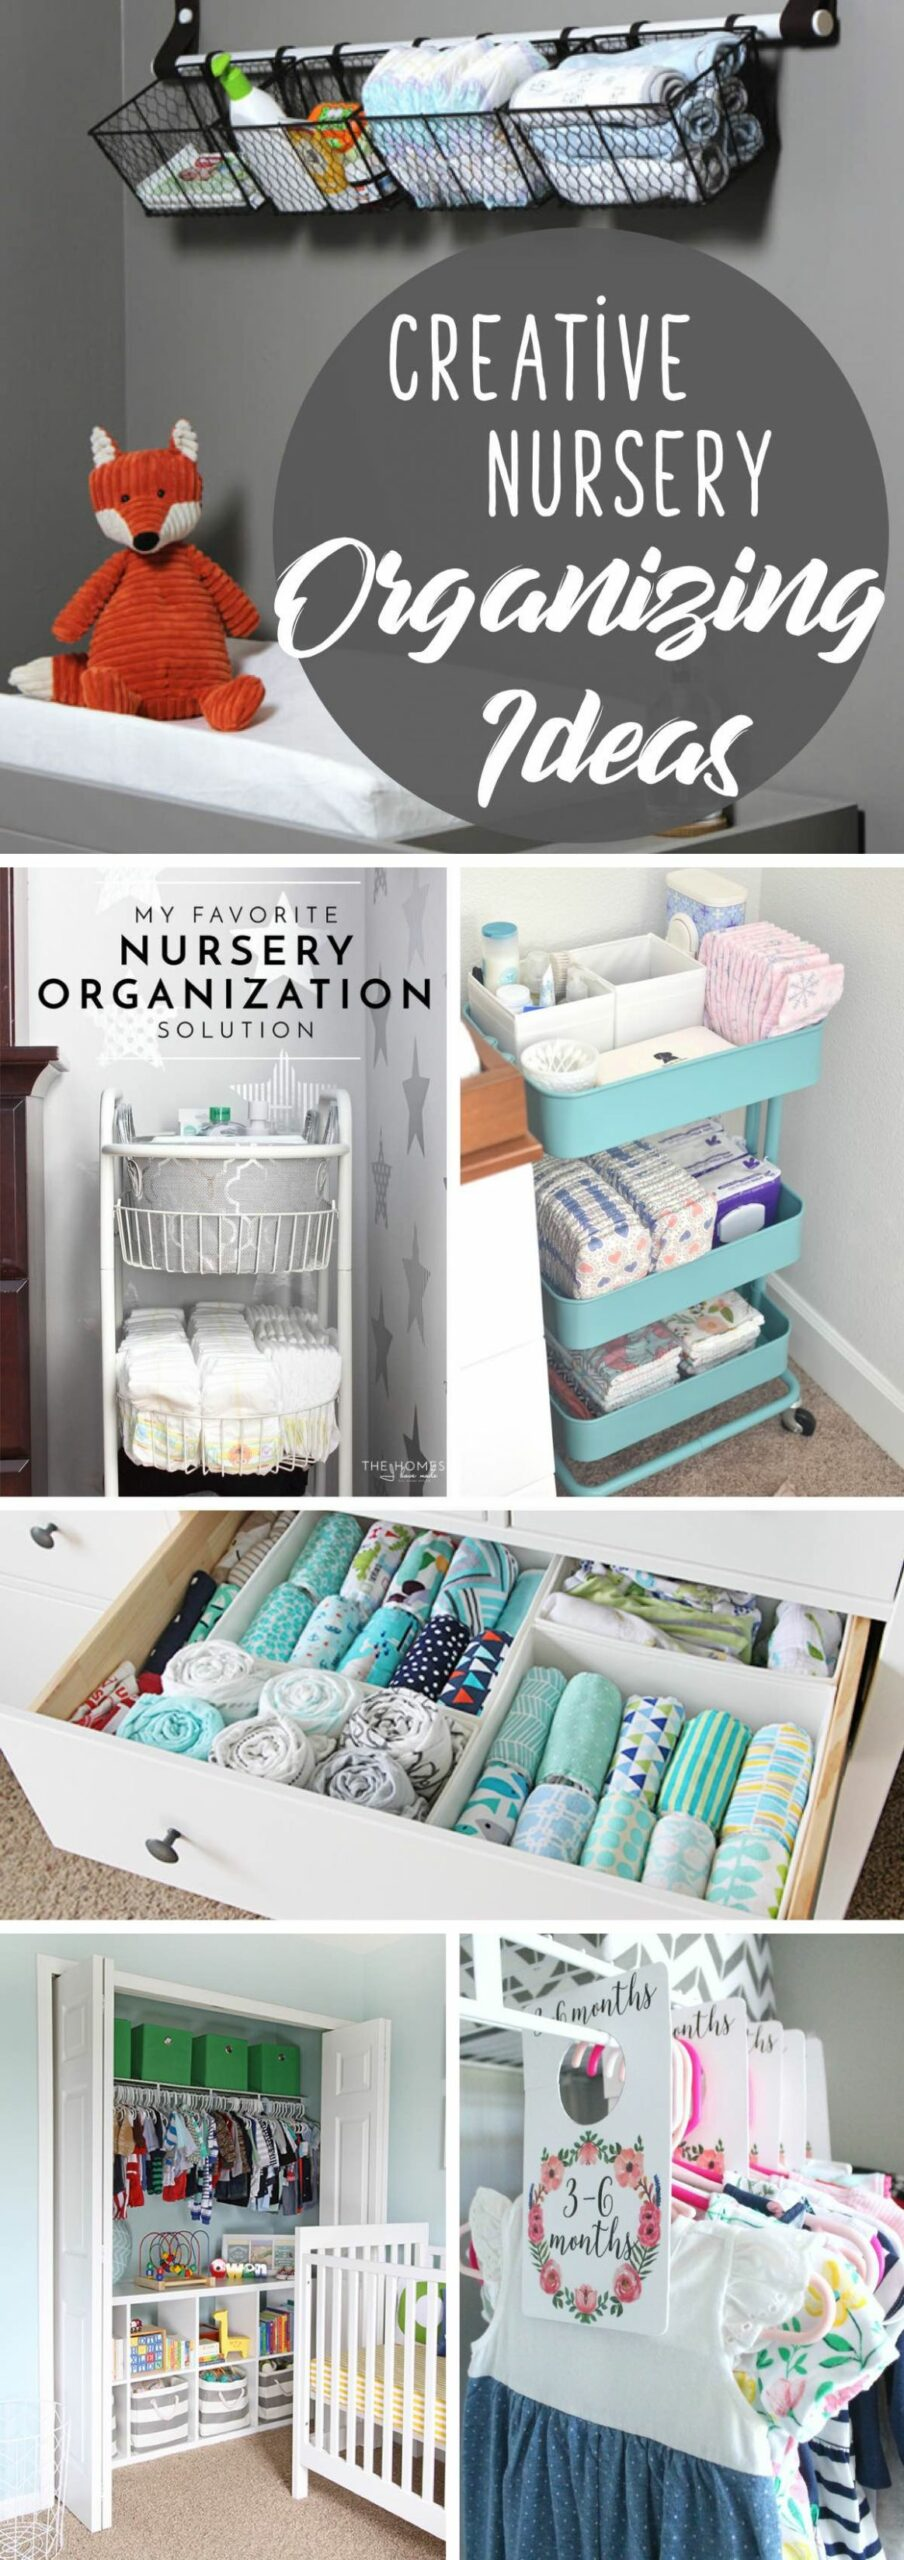 8 Creative Nursery Organizing Ideas Making the Baby Room Look ..